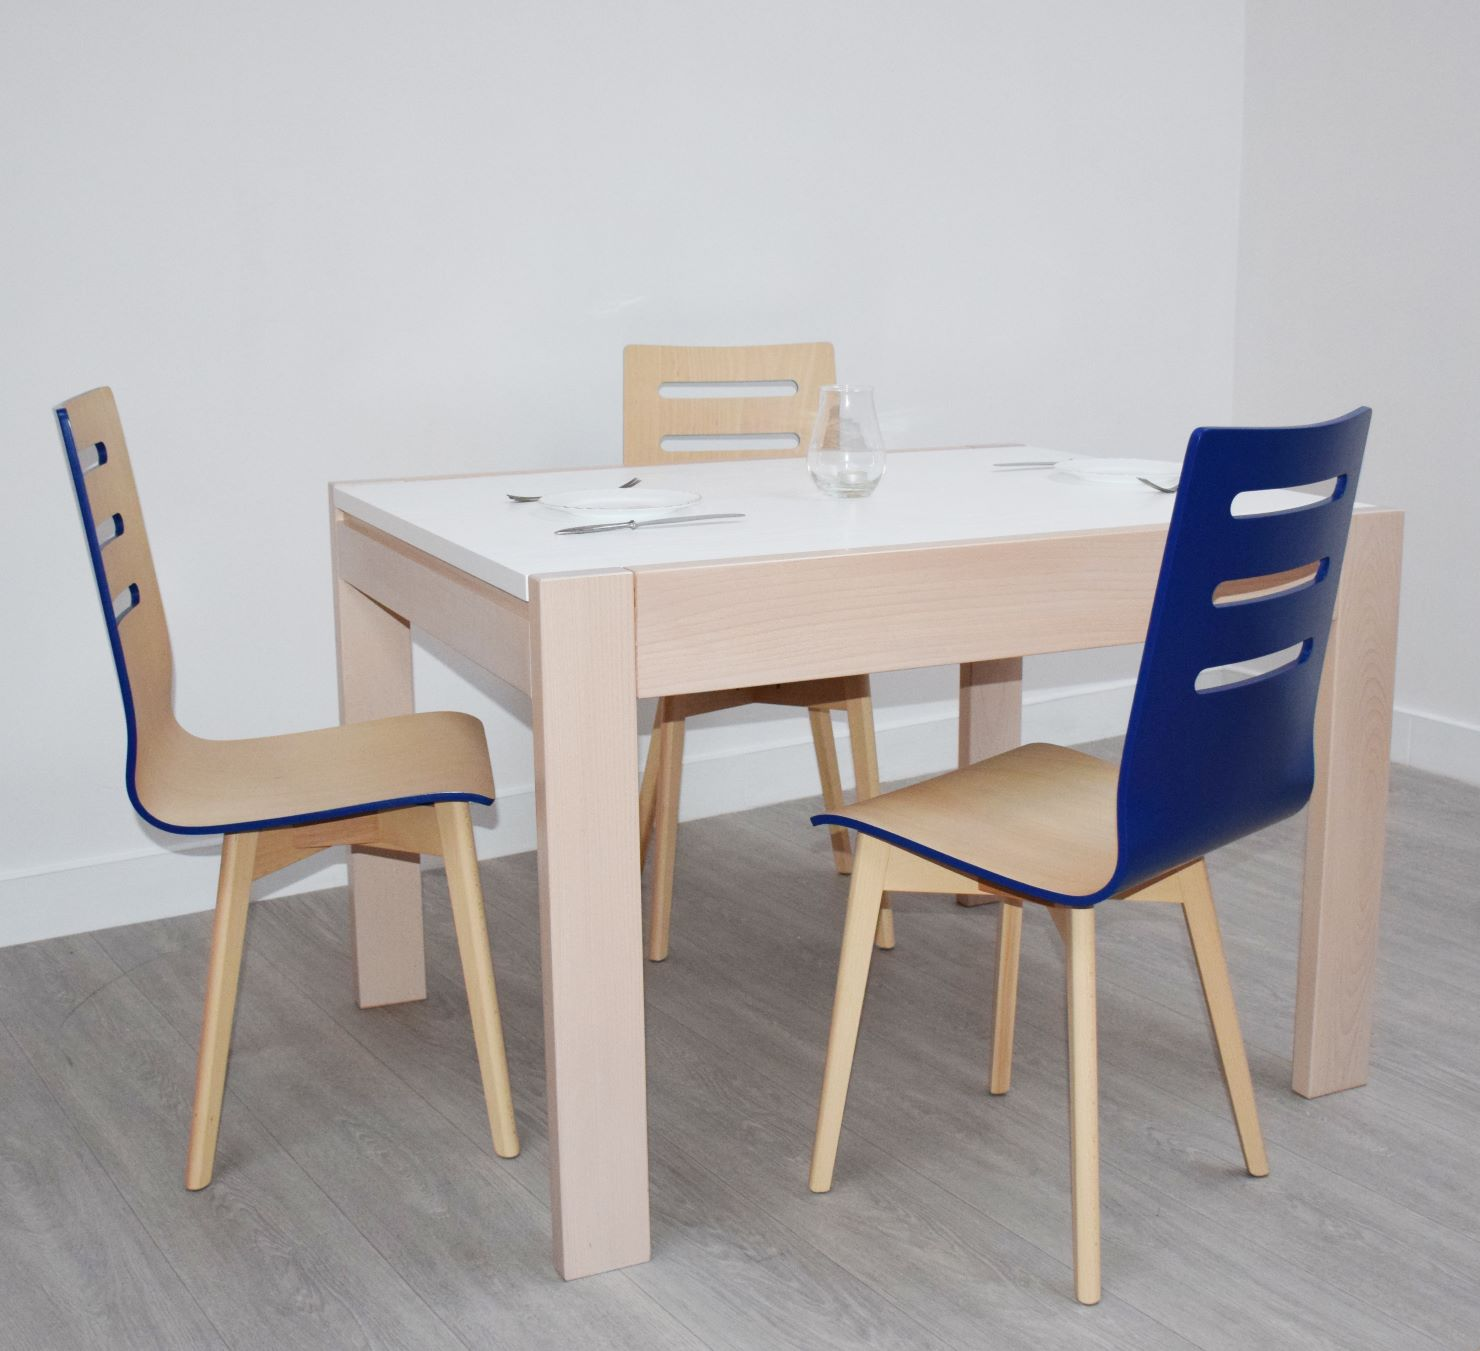 Extendable Table Neapol and Sonata (blue) Chairs from GVA Interiors